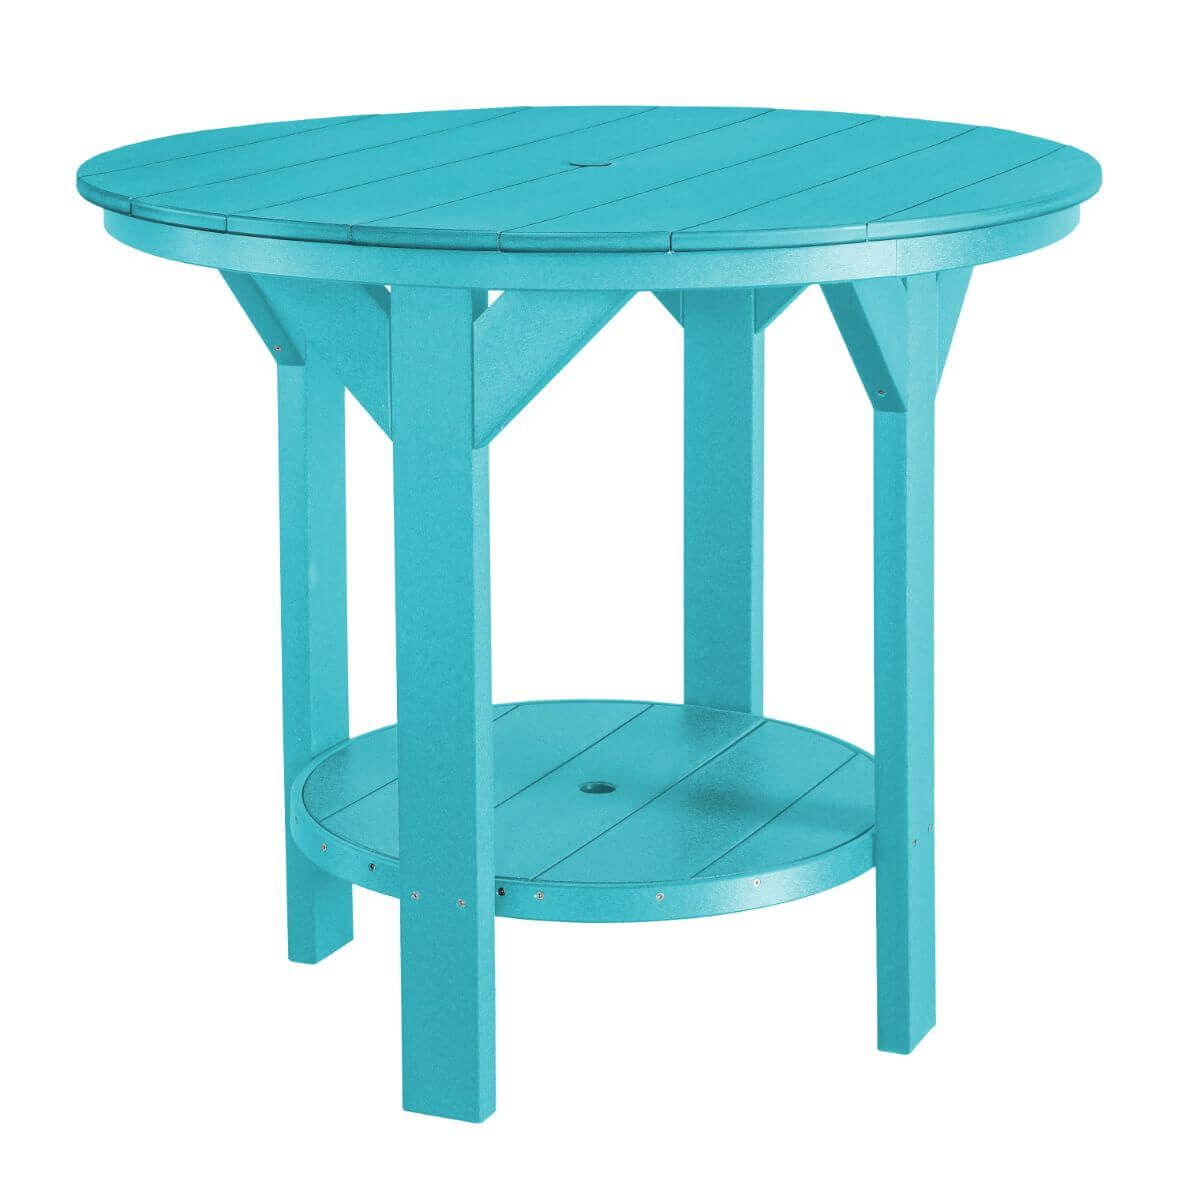 Aruba Blue Sidra Outdoor Pub Table